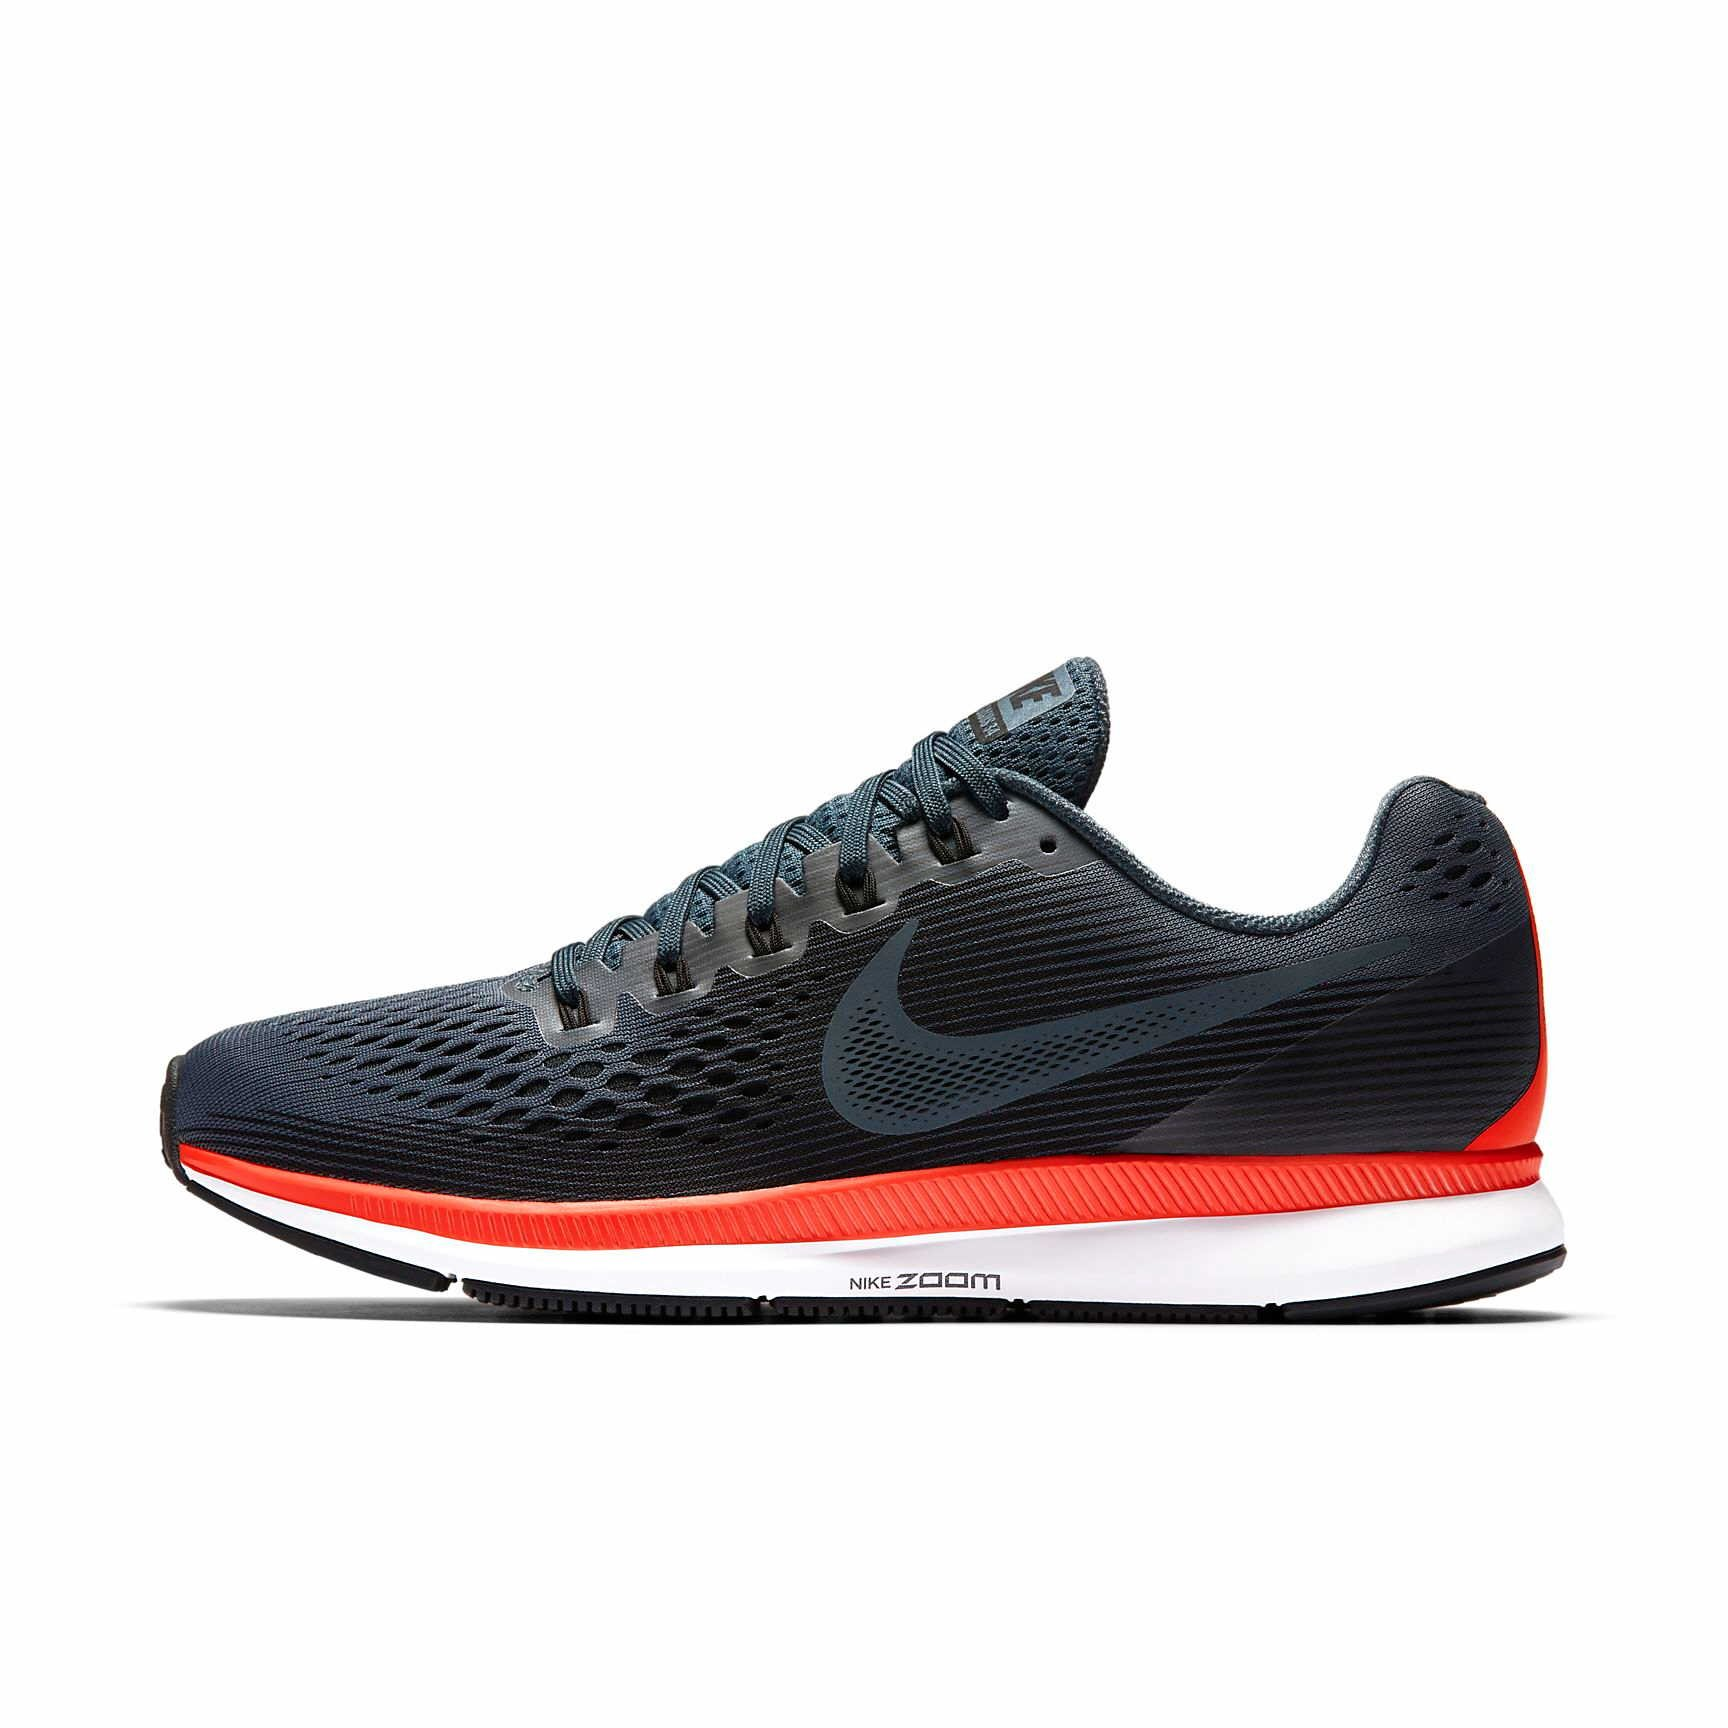 low priced 6909e e863c Galleon - Nike Air Zoom Pegasus 34 Men s Running Shoes 880555 403 Multiple  Sizes (9.5 D US)